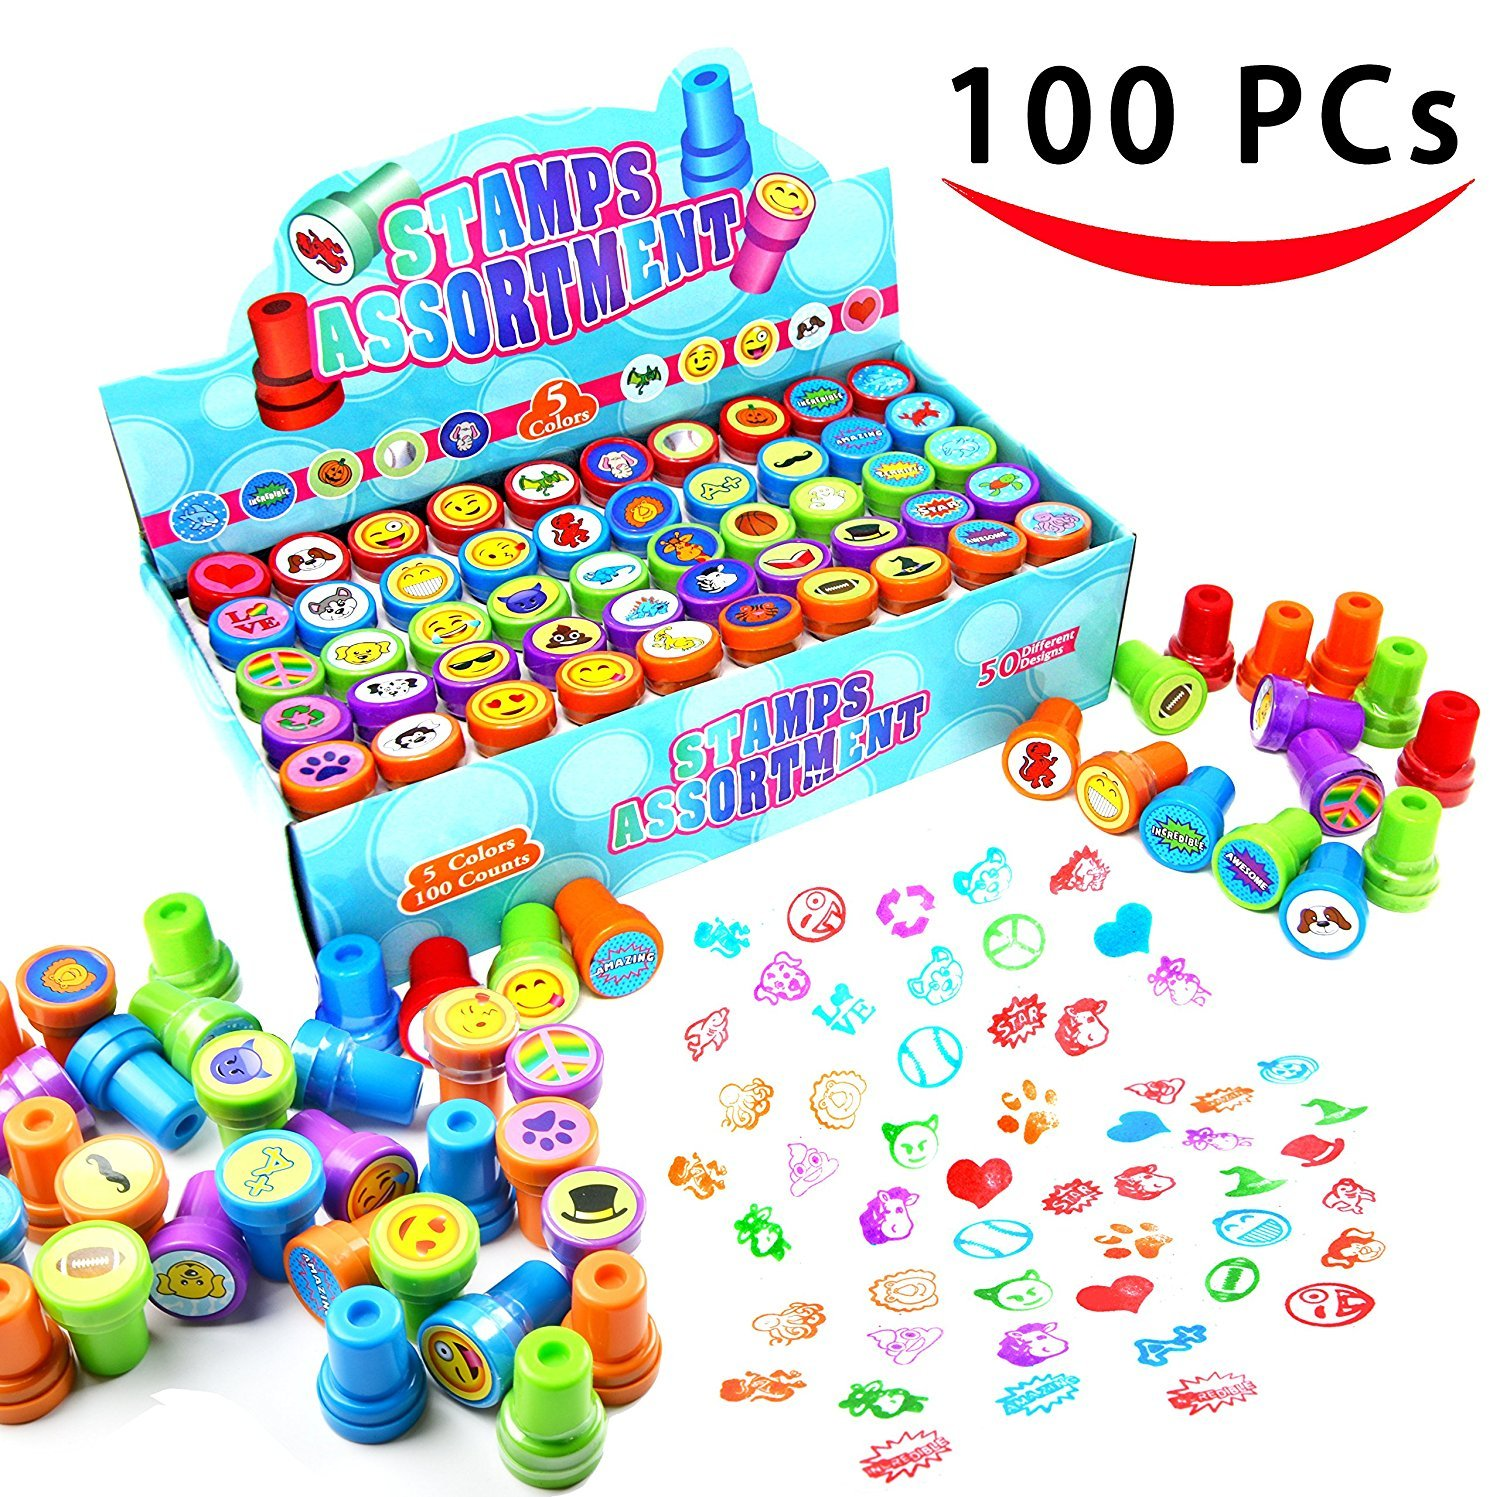 100 Pieces Assorted Stamps for Kids Self-ink Stamps (50 DIFFERENT Designs, Emoji Stampers, Dinosaur Stampers, Zoo Safari Stampers) for Party Favor, School Prizes, Teacher Stamps Easter Egg Stuffer Joyin Toy